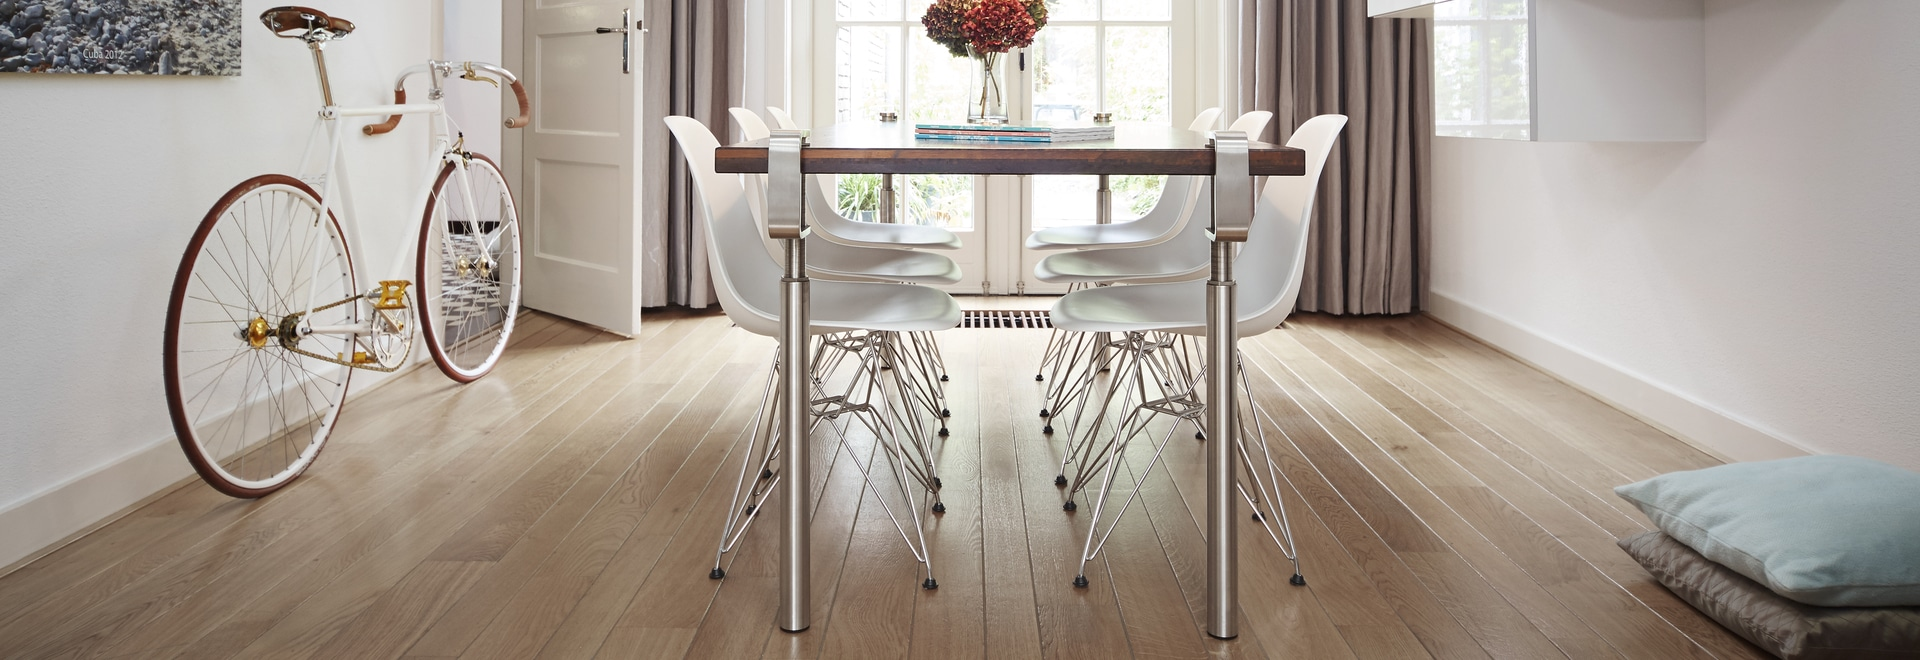 DINING TABLE STEEL LEGS YOU HAVE GOT TO SEE